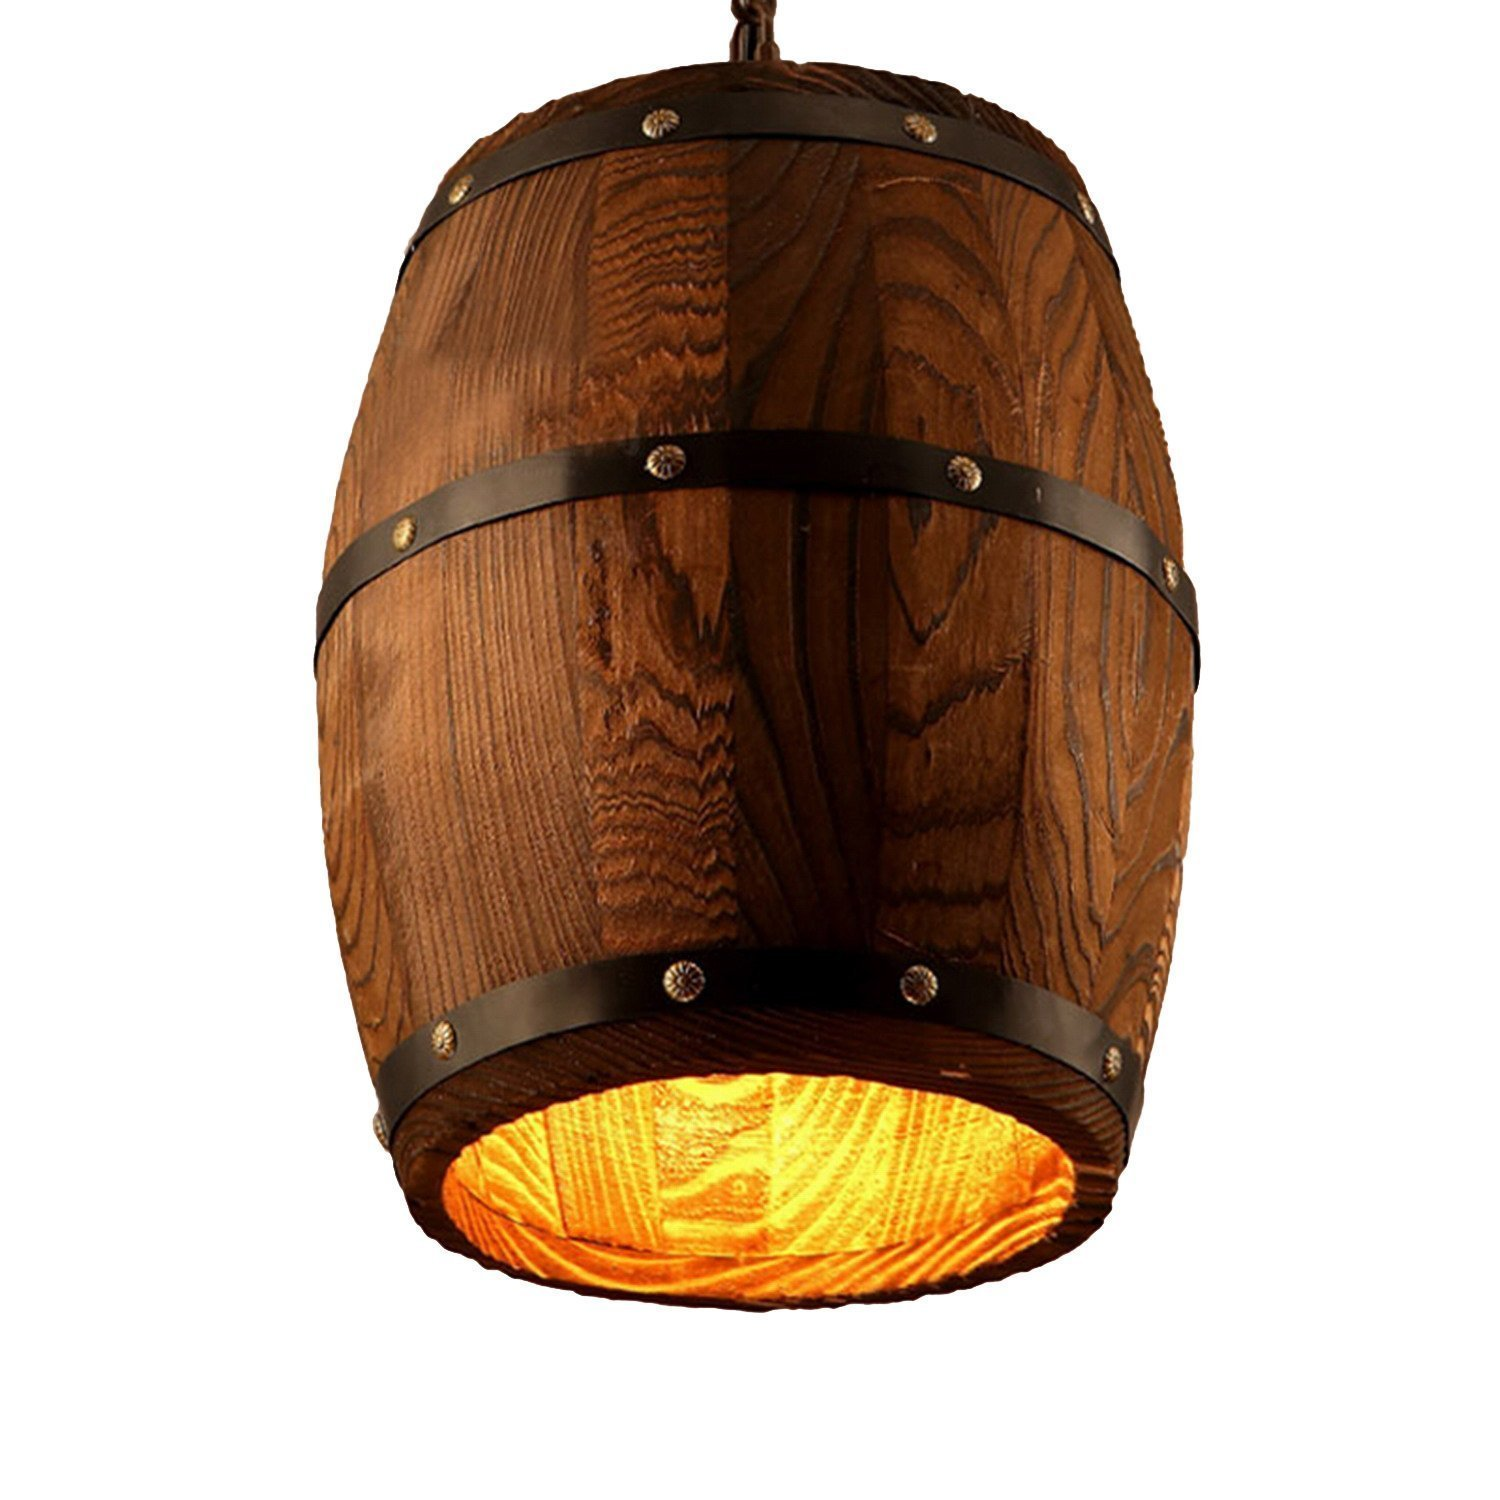 Wood Wooden Wine Barrel Shade Ceiling Light Fixture Pendant Retro Industrial French Country Vintage Antique Chandelier Restaurant Bar Pendant Lamp Nostalgic Cafe (9.45'' Width X 13'' Height)